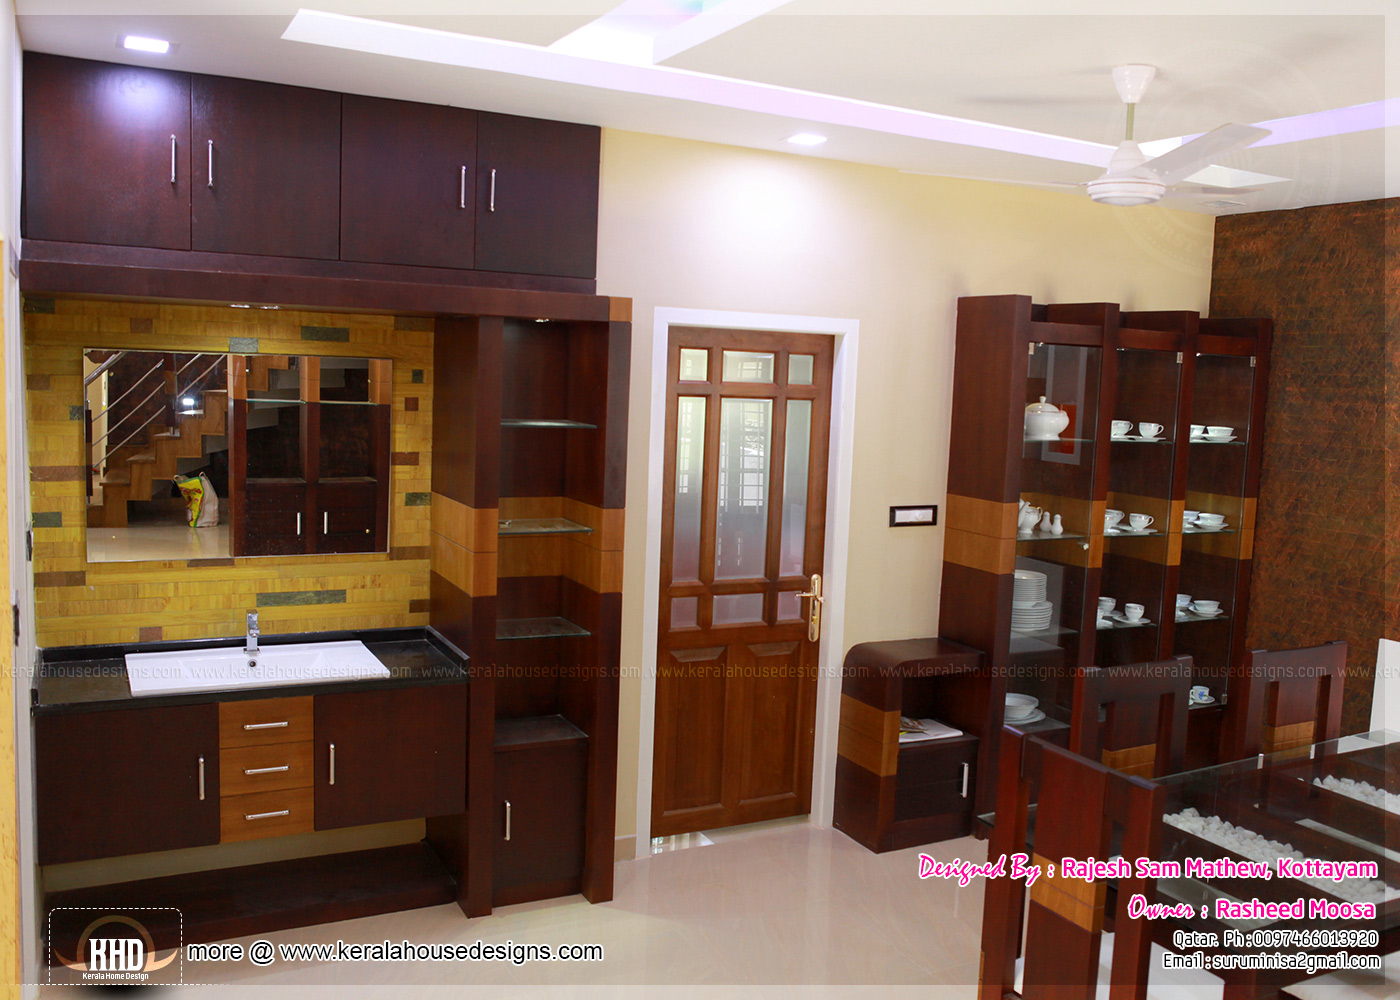 Kerala interior design with photos indian house plans for Kerala interior designs